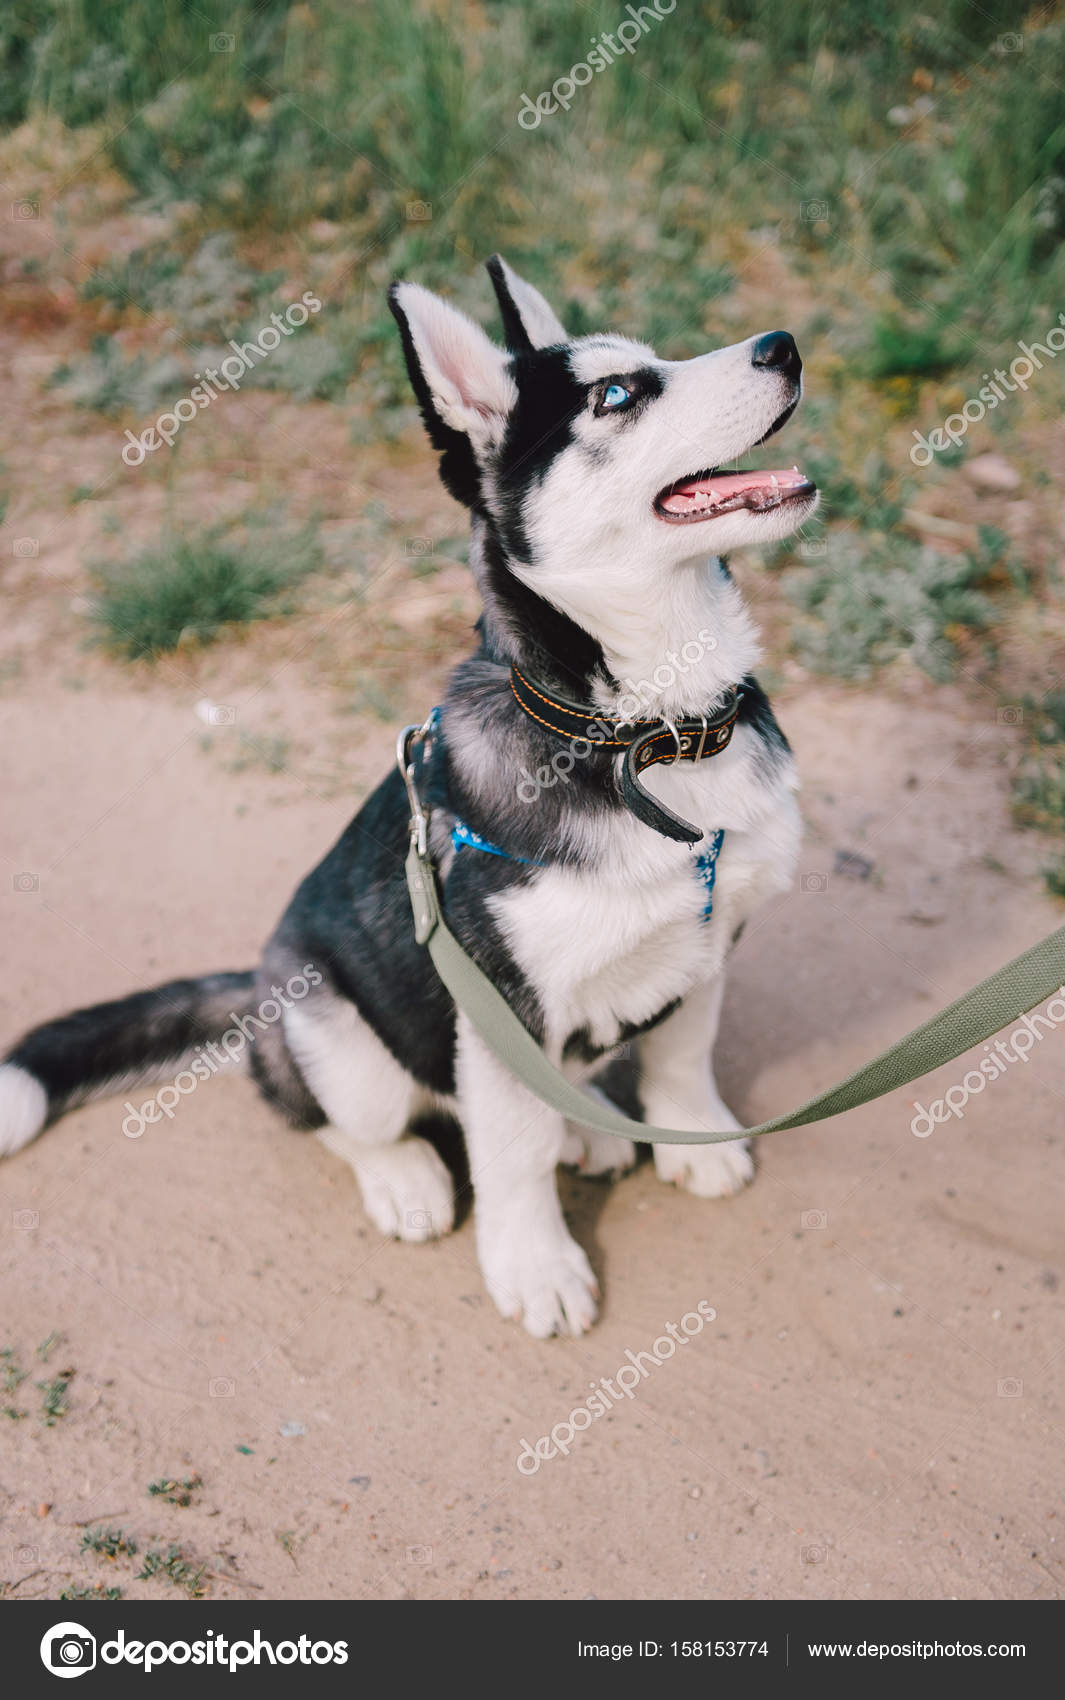 Cute Siberian Husky Puppy Dog Play Outdoors At Sunny Summer Weather Stock Photo C Dashakiseleva91 Gmail Com 158153774